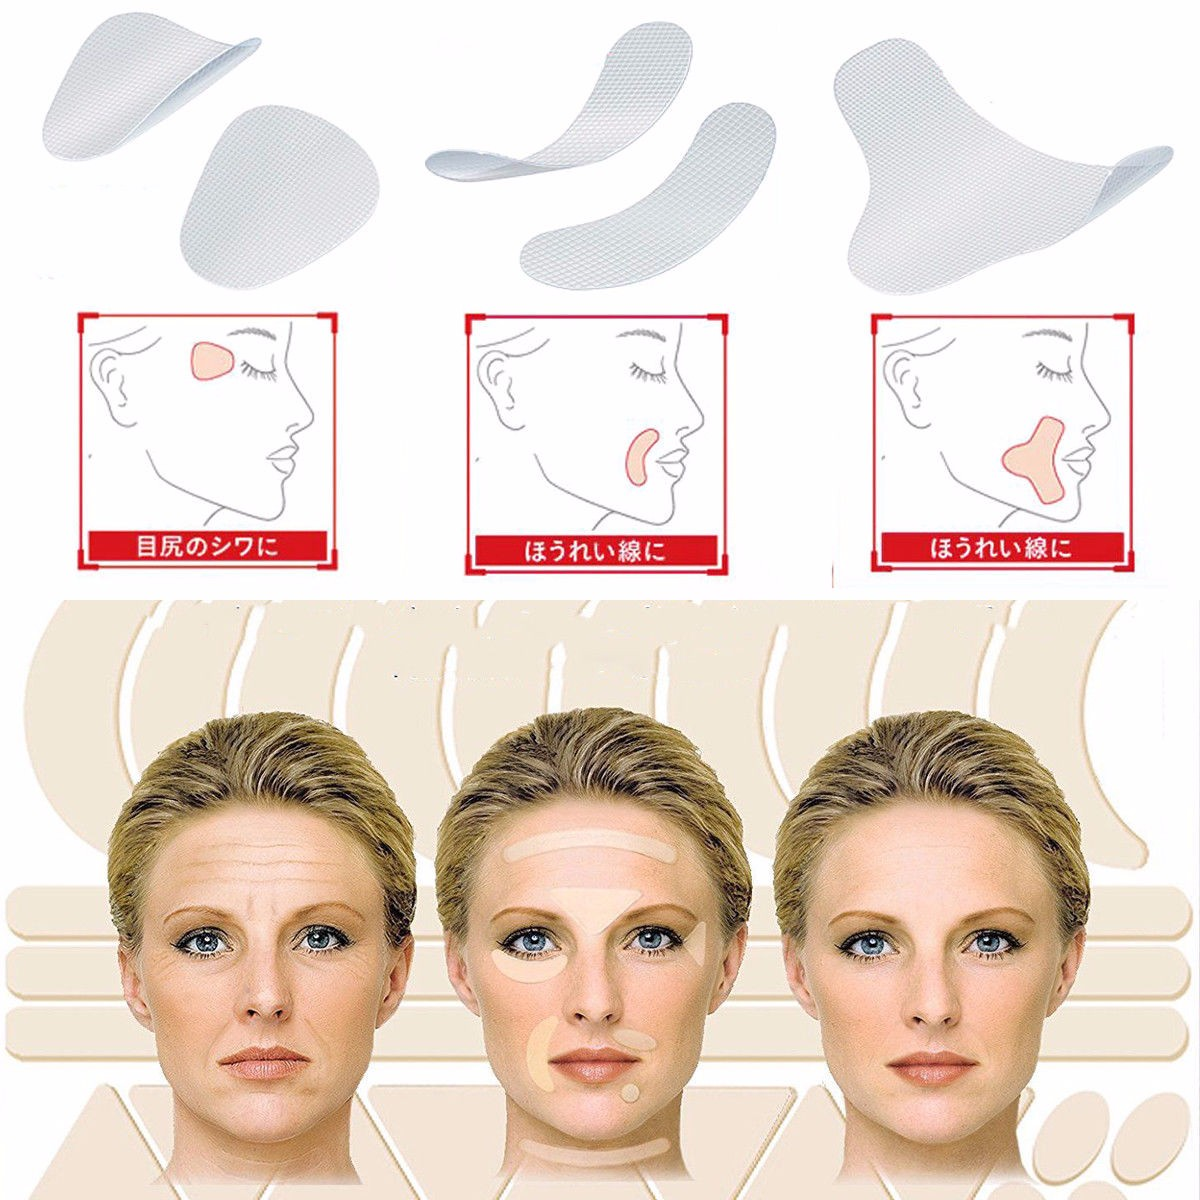 Stickers Patches Lifting-Tape Wrinkle-Remover Facial-Line Face-Skin Forehead Anti-Sagging title=